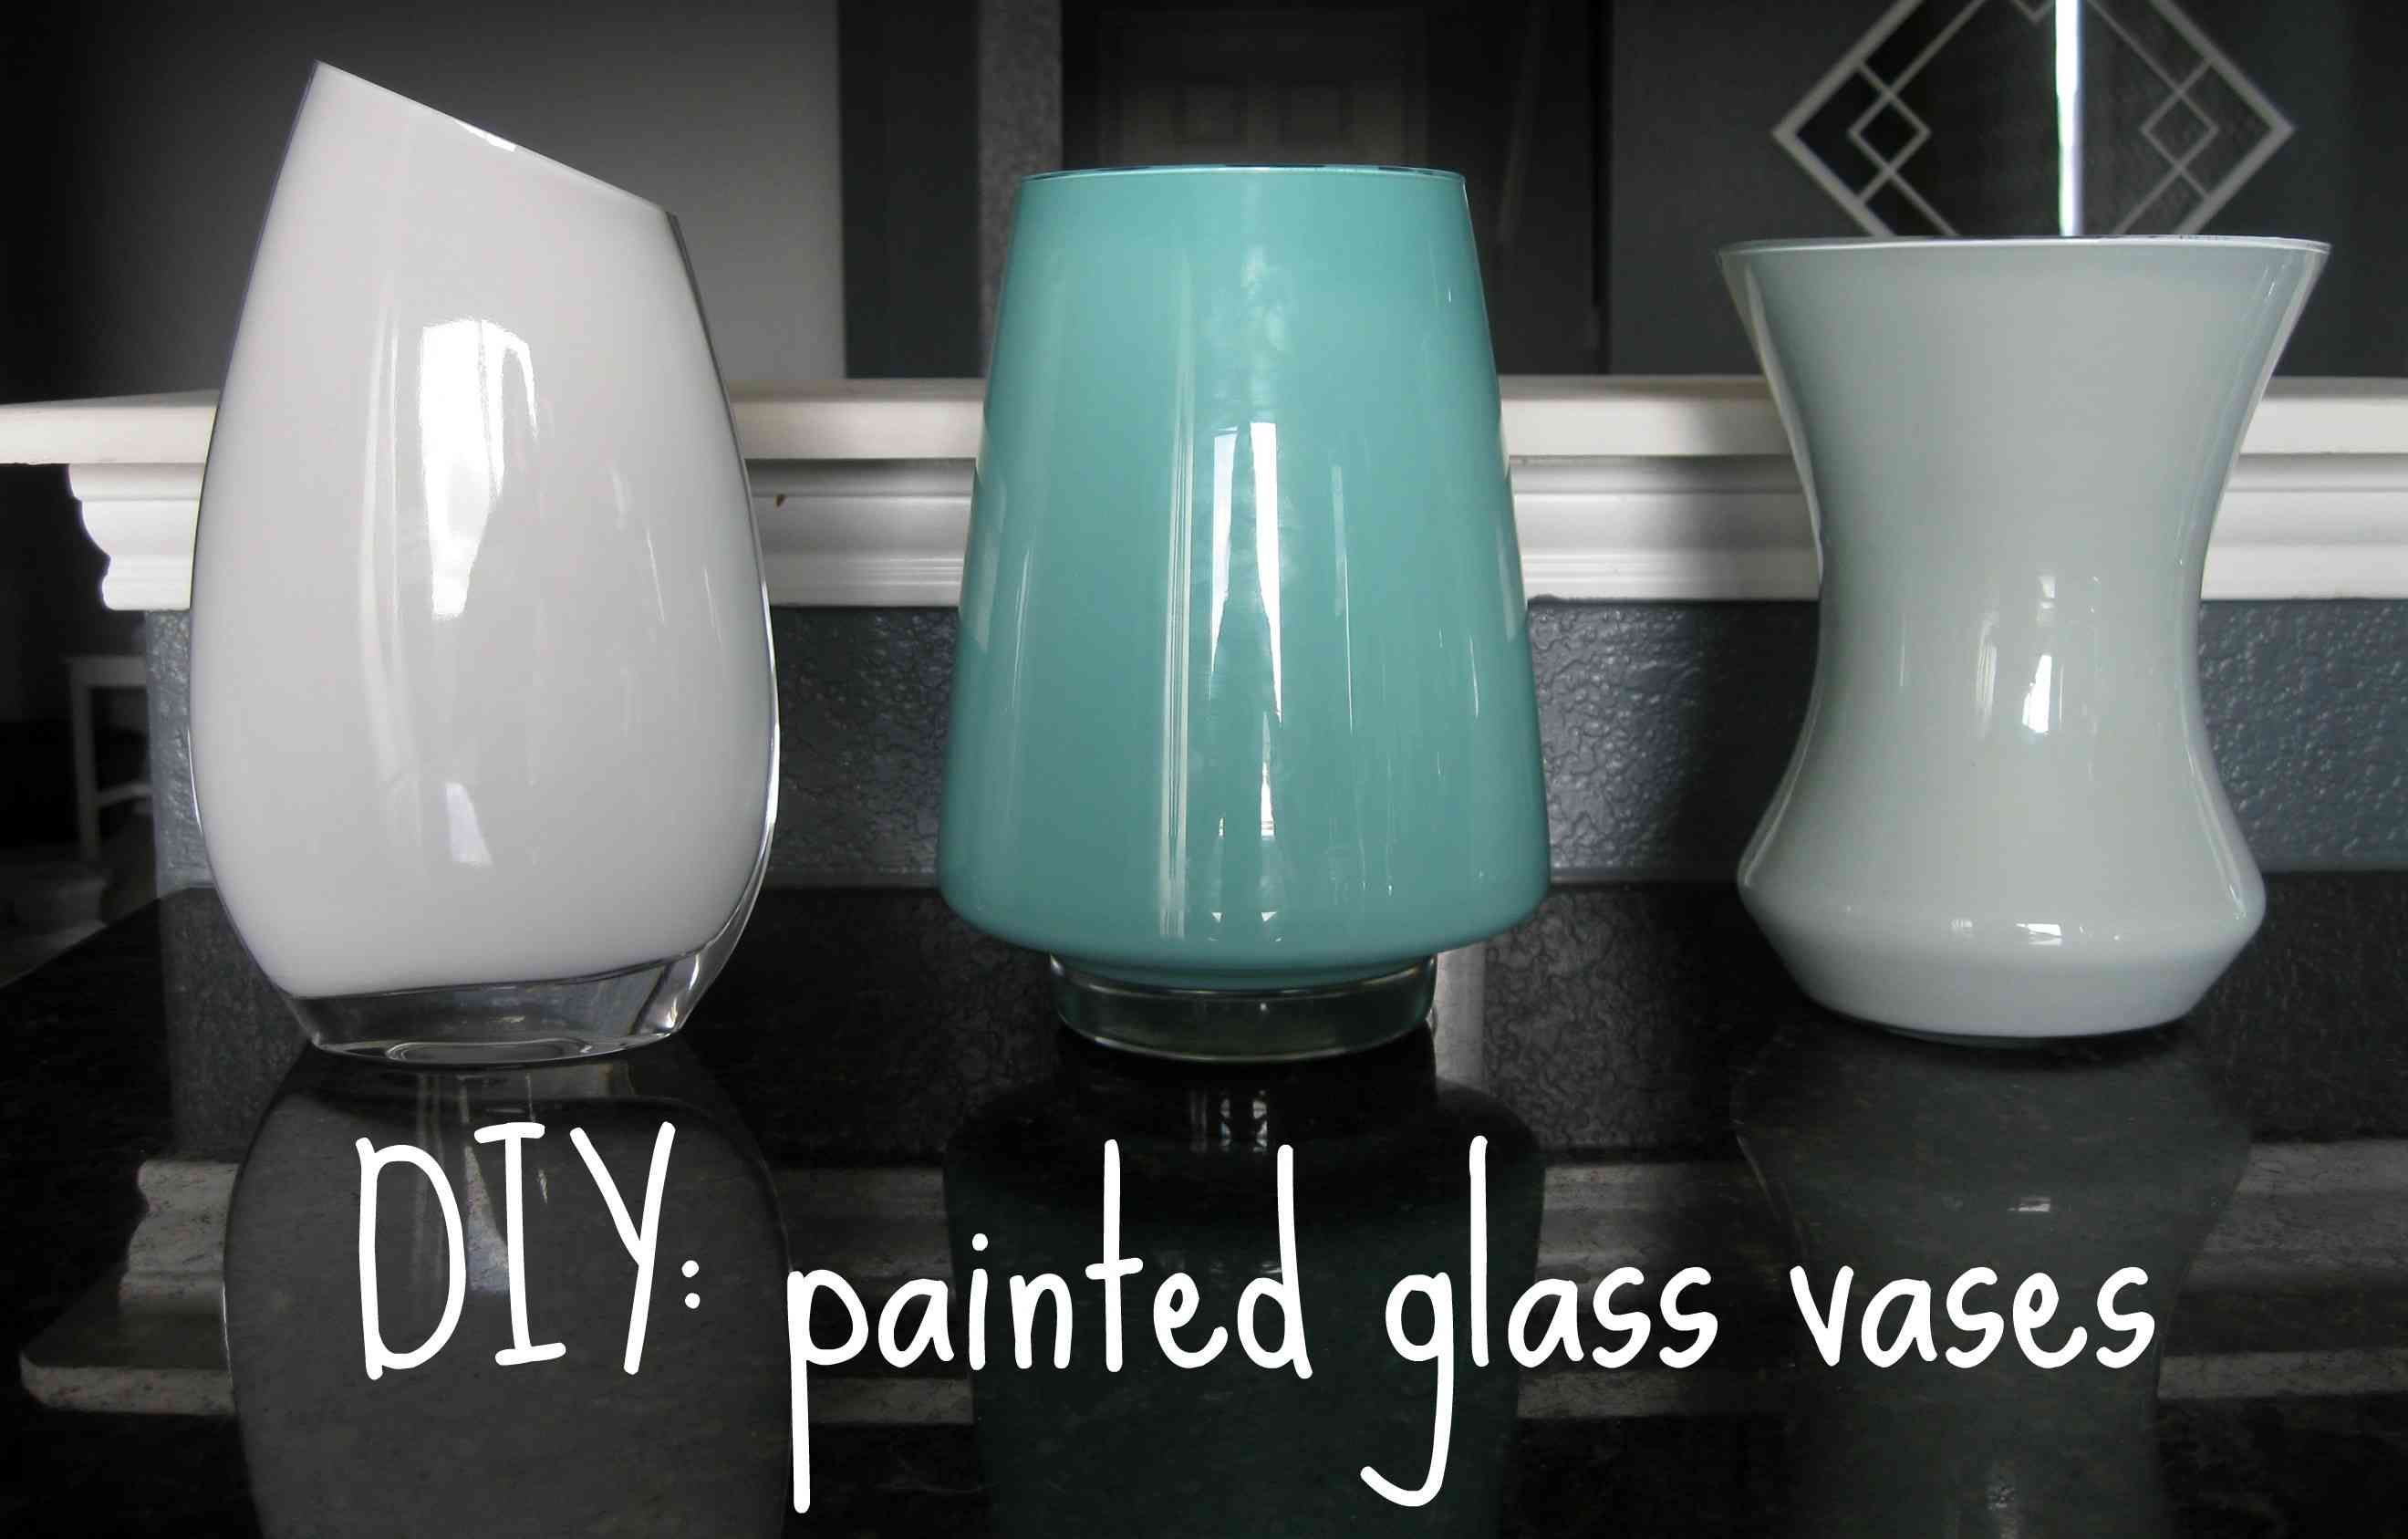 mexican blown glass vases of 23 blue crystal vase the weekly world with diy painted glass vasesh vases how to paint vasesi 0d via conejita info